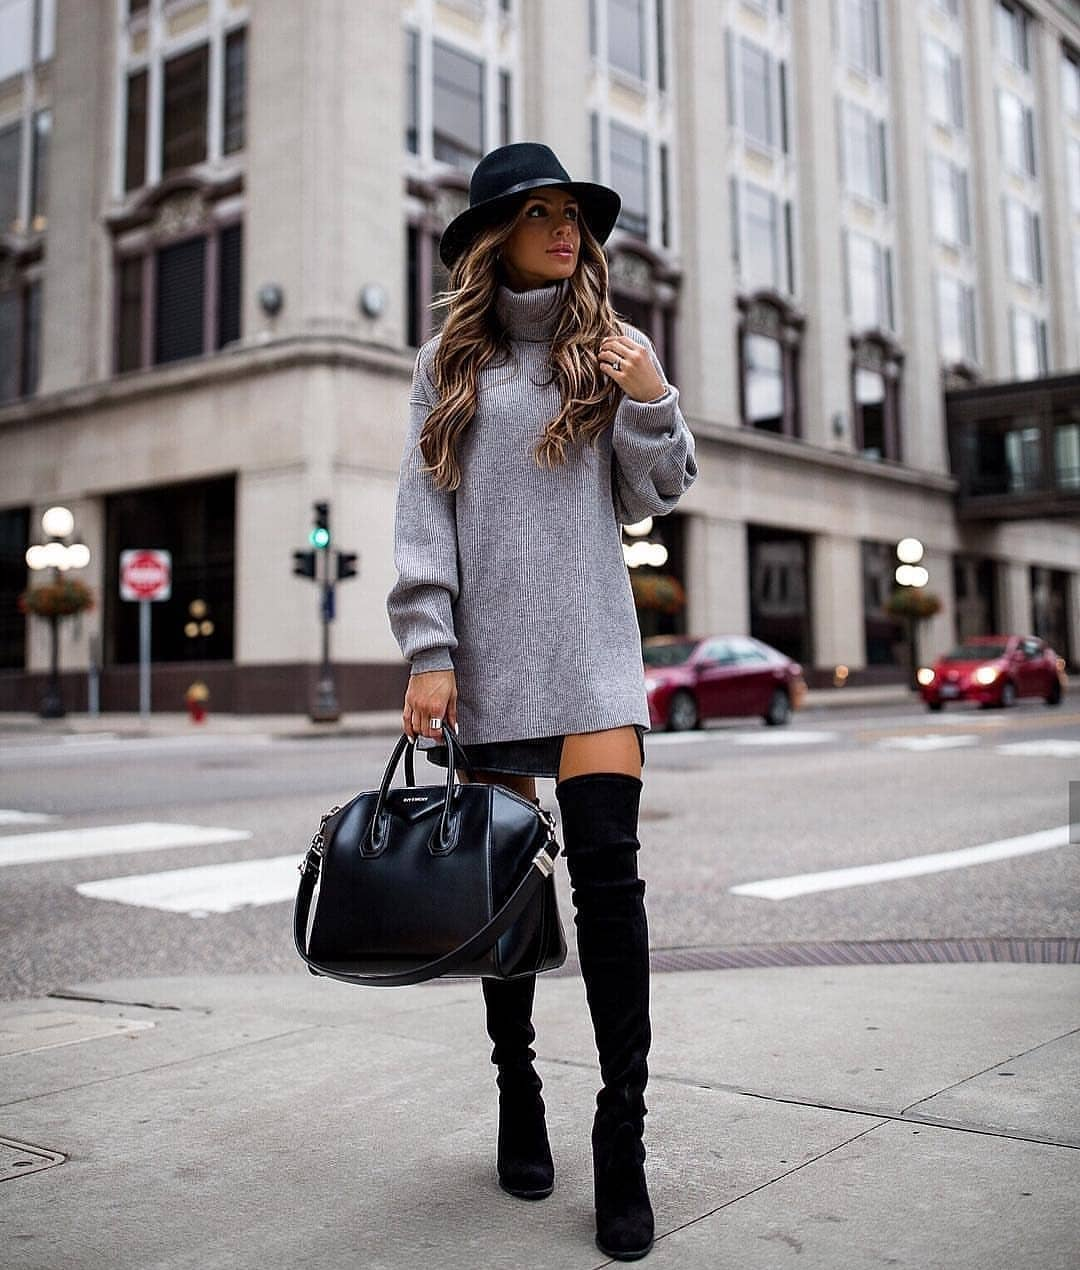 Grey Sweater Dress And Suede OTK Boots In Black For Fall 2020